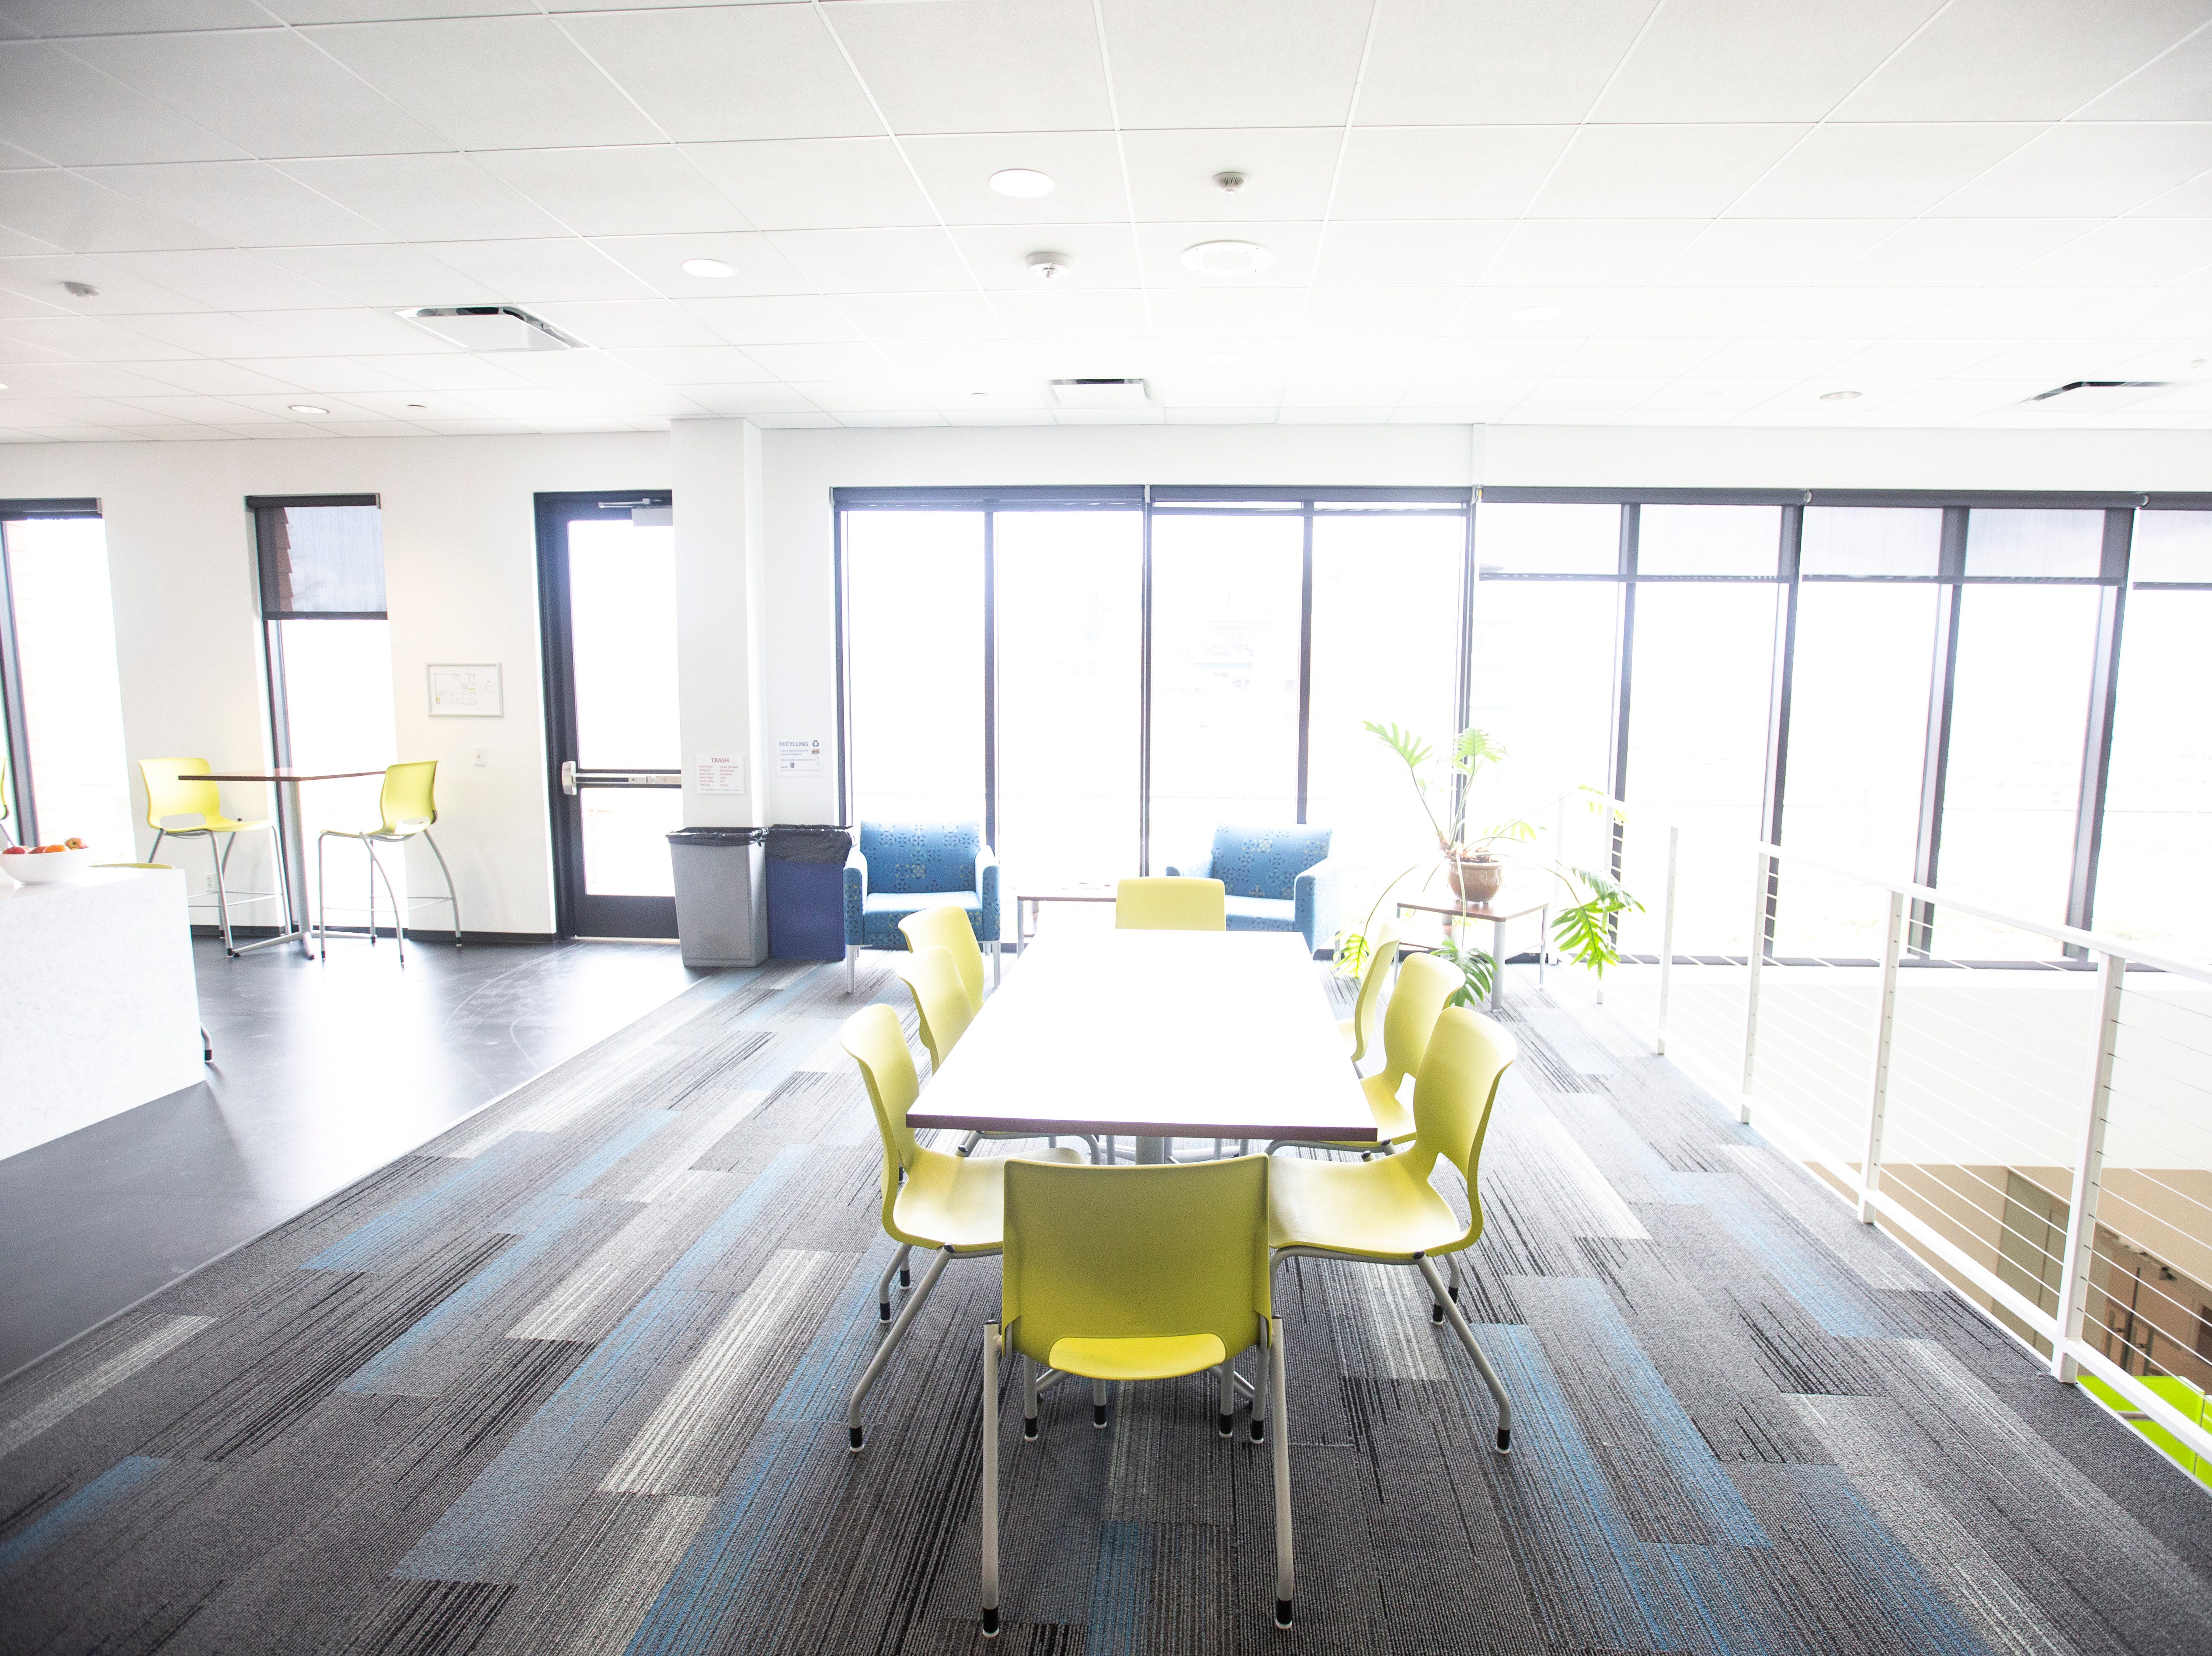 A second floor eating area is pictured on Wednesday, April 17, 2019, at the Johnson County Ambulance Services building at 808 S. Dubuque Street in Iowa City, Iowa.